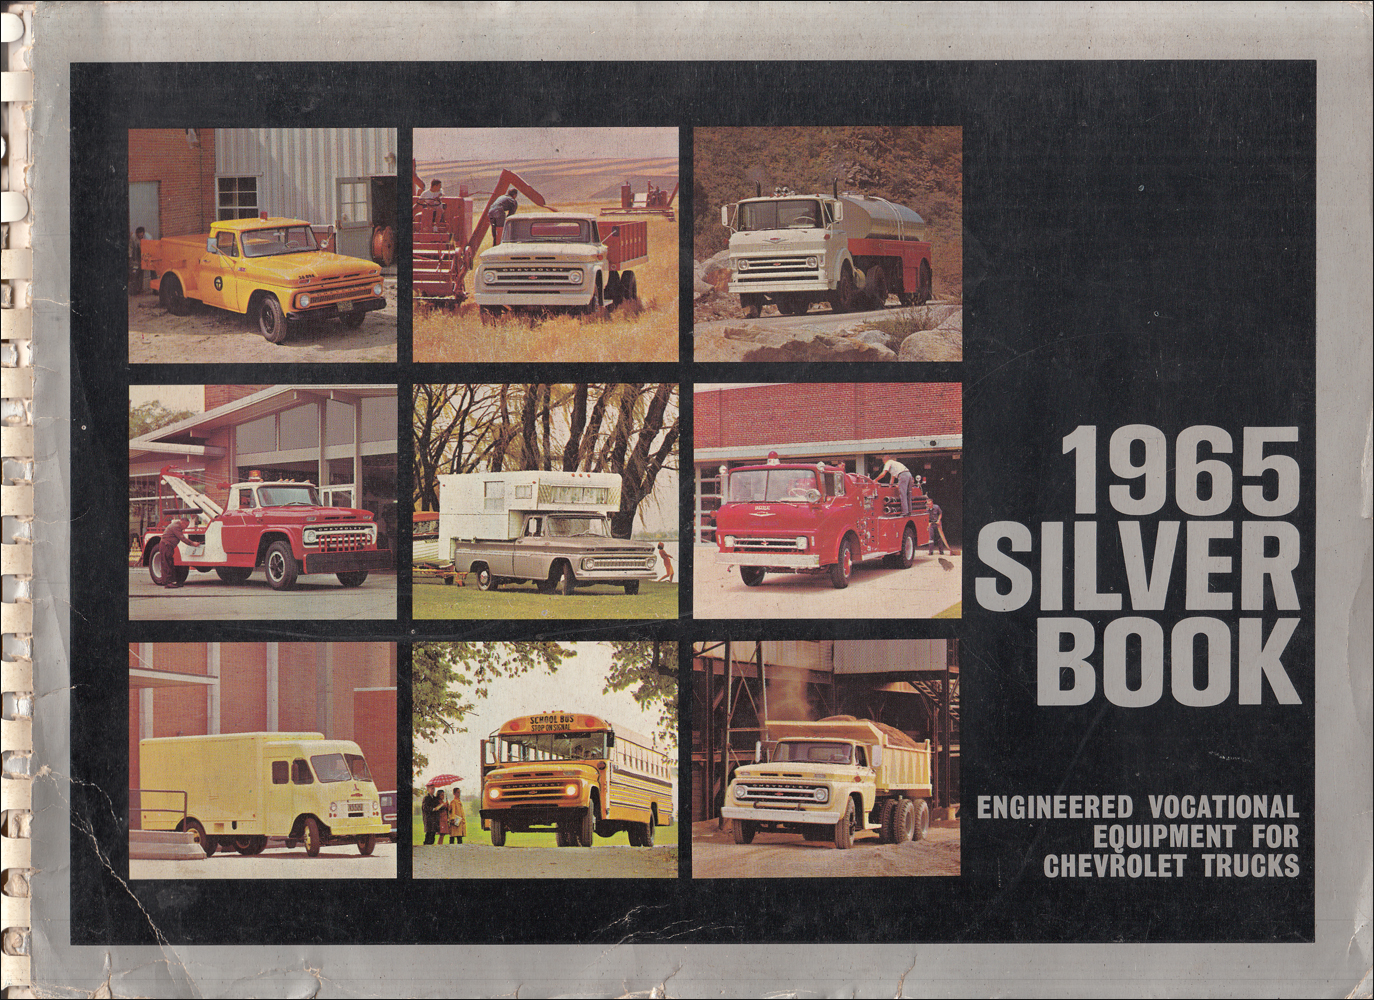 1965 Chevrolet Truck Silver Book Special Equipment Dealer Album